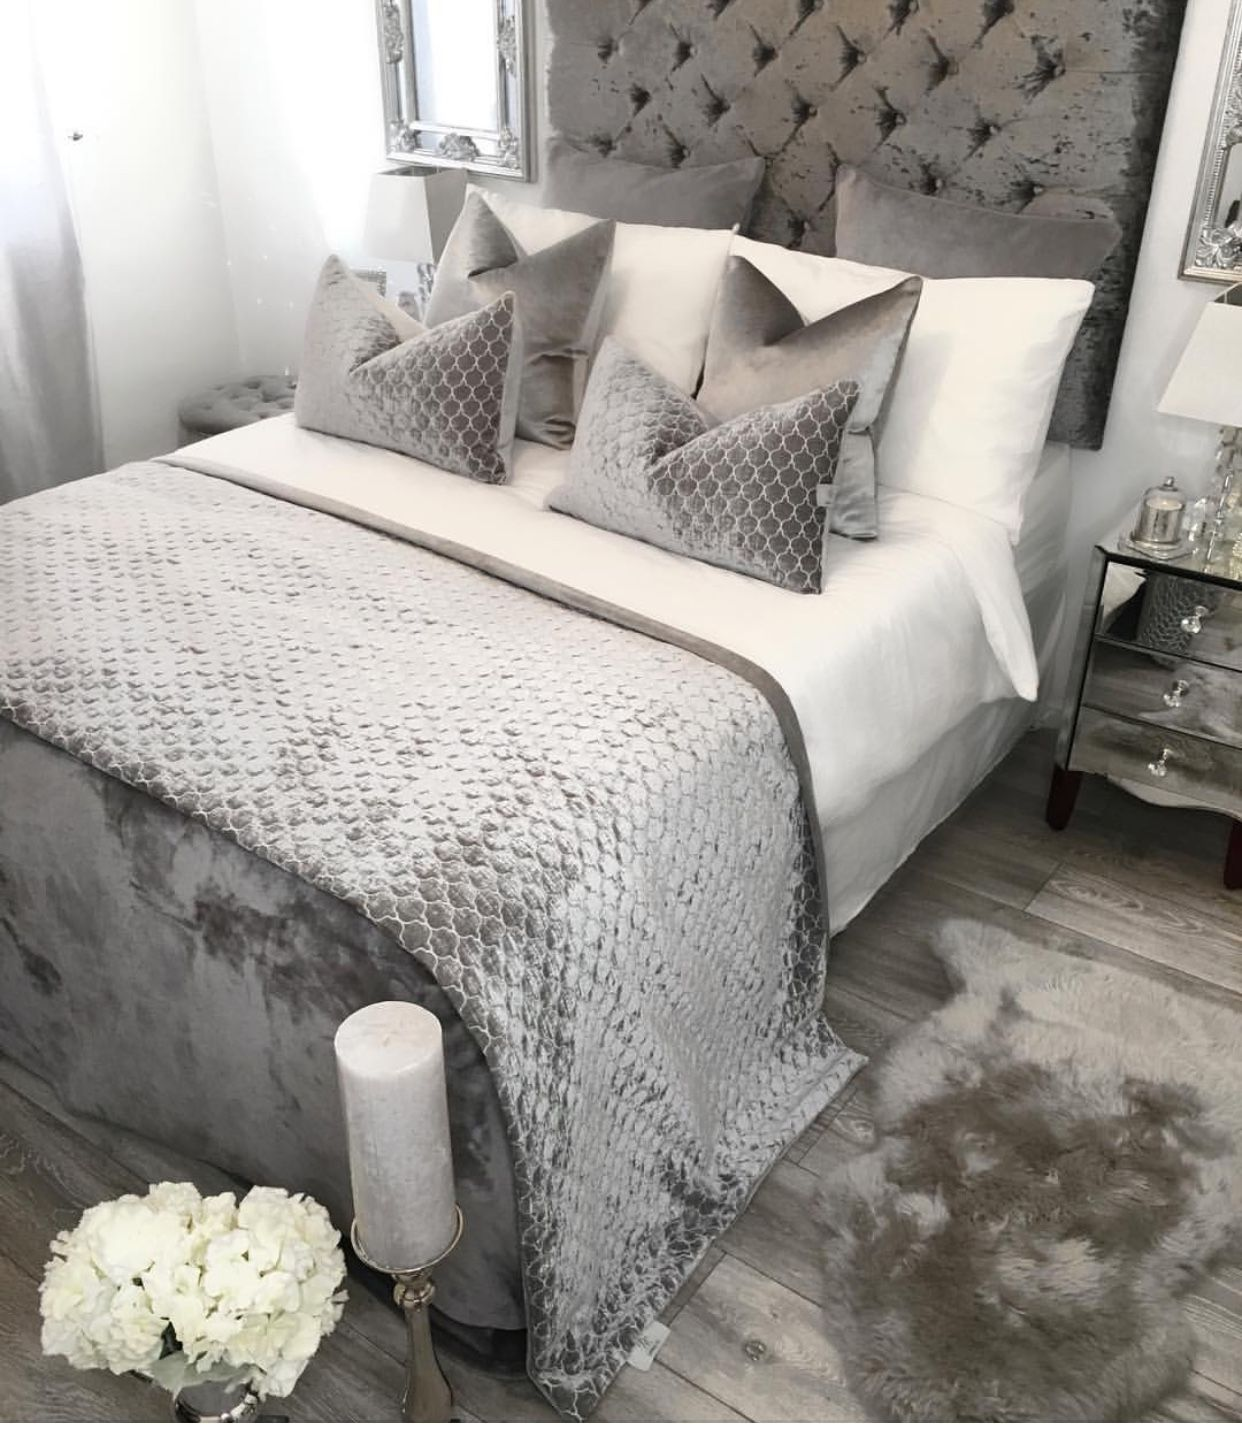 Pin By Joias In Vogue On Bedroom Ideas Grey Decor Silver